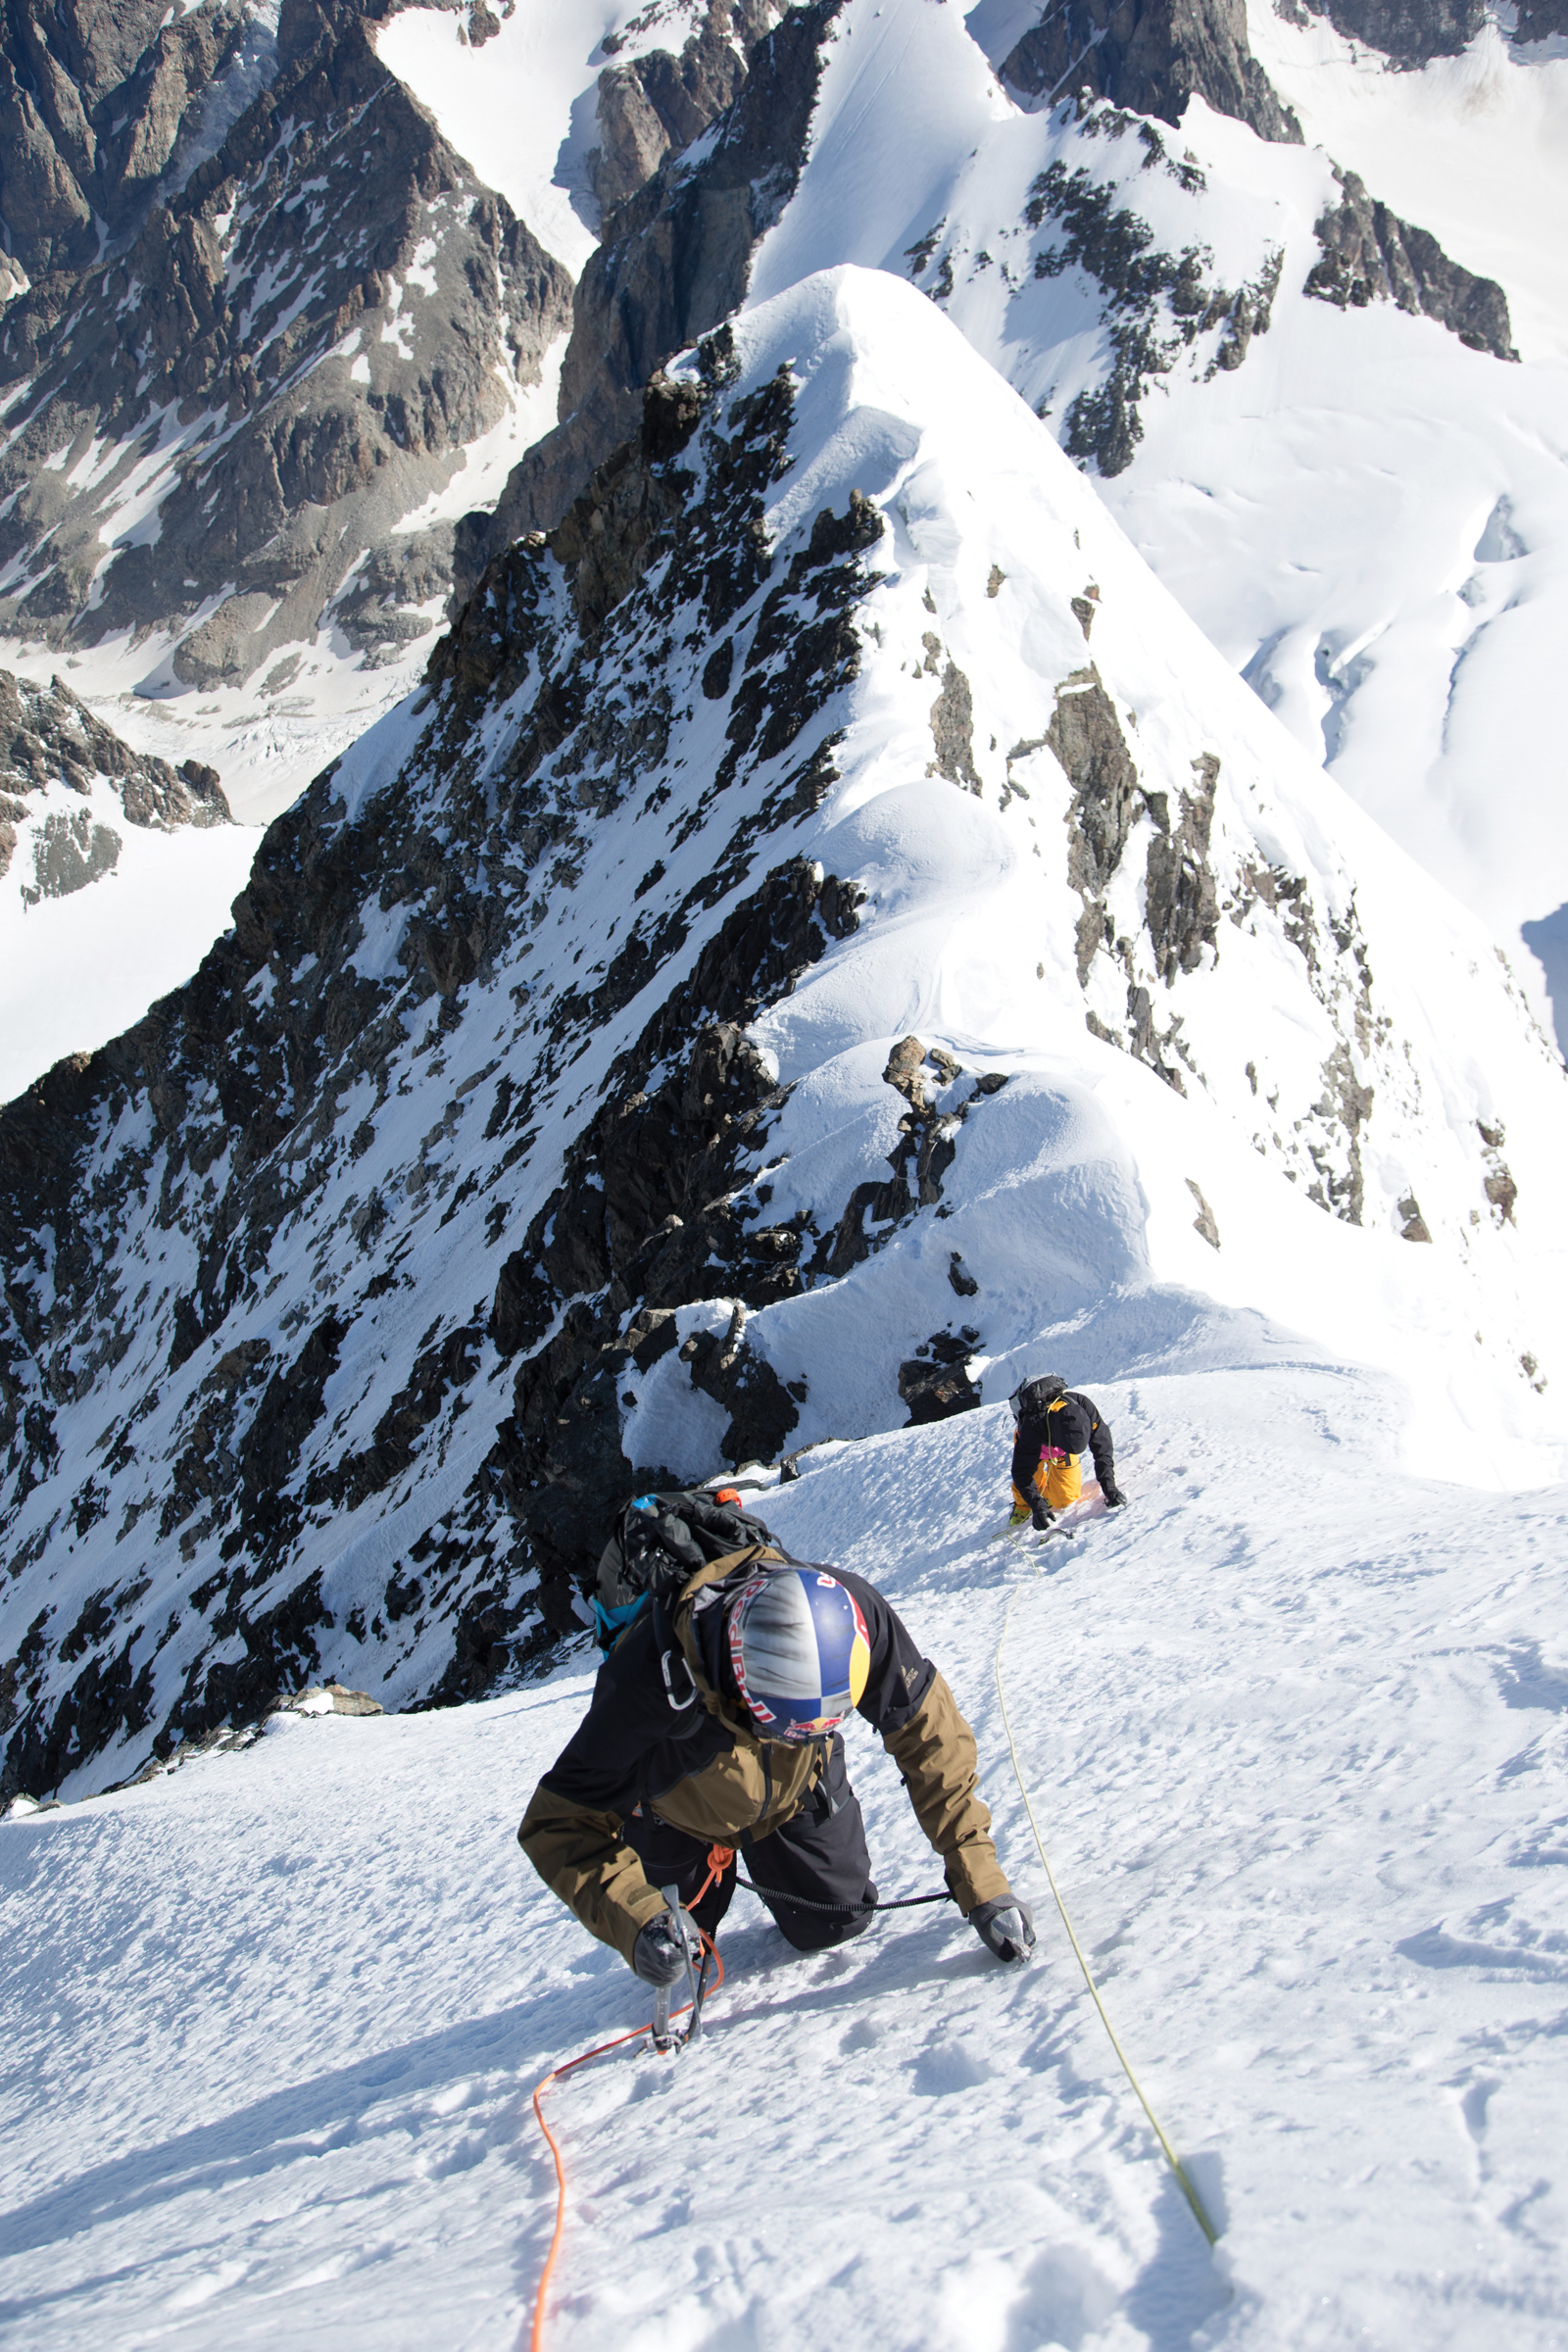 Summiting Mt. Ushba is a task unto itself—but getting to the top means these athletes are only halfway there.